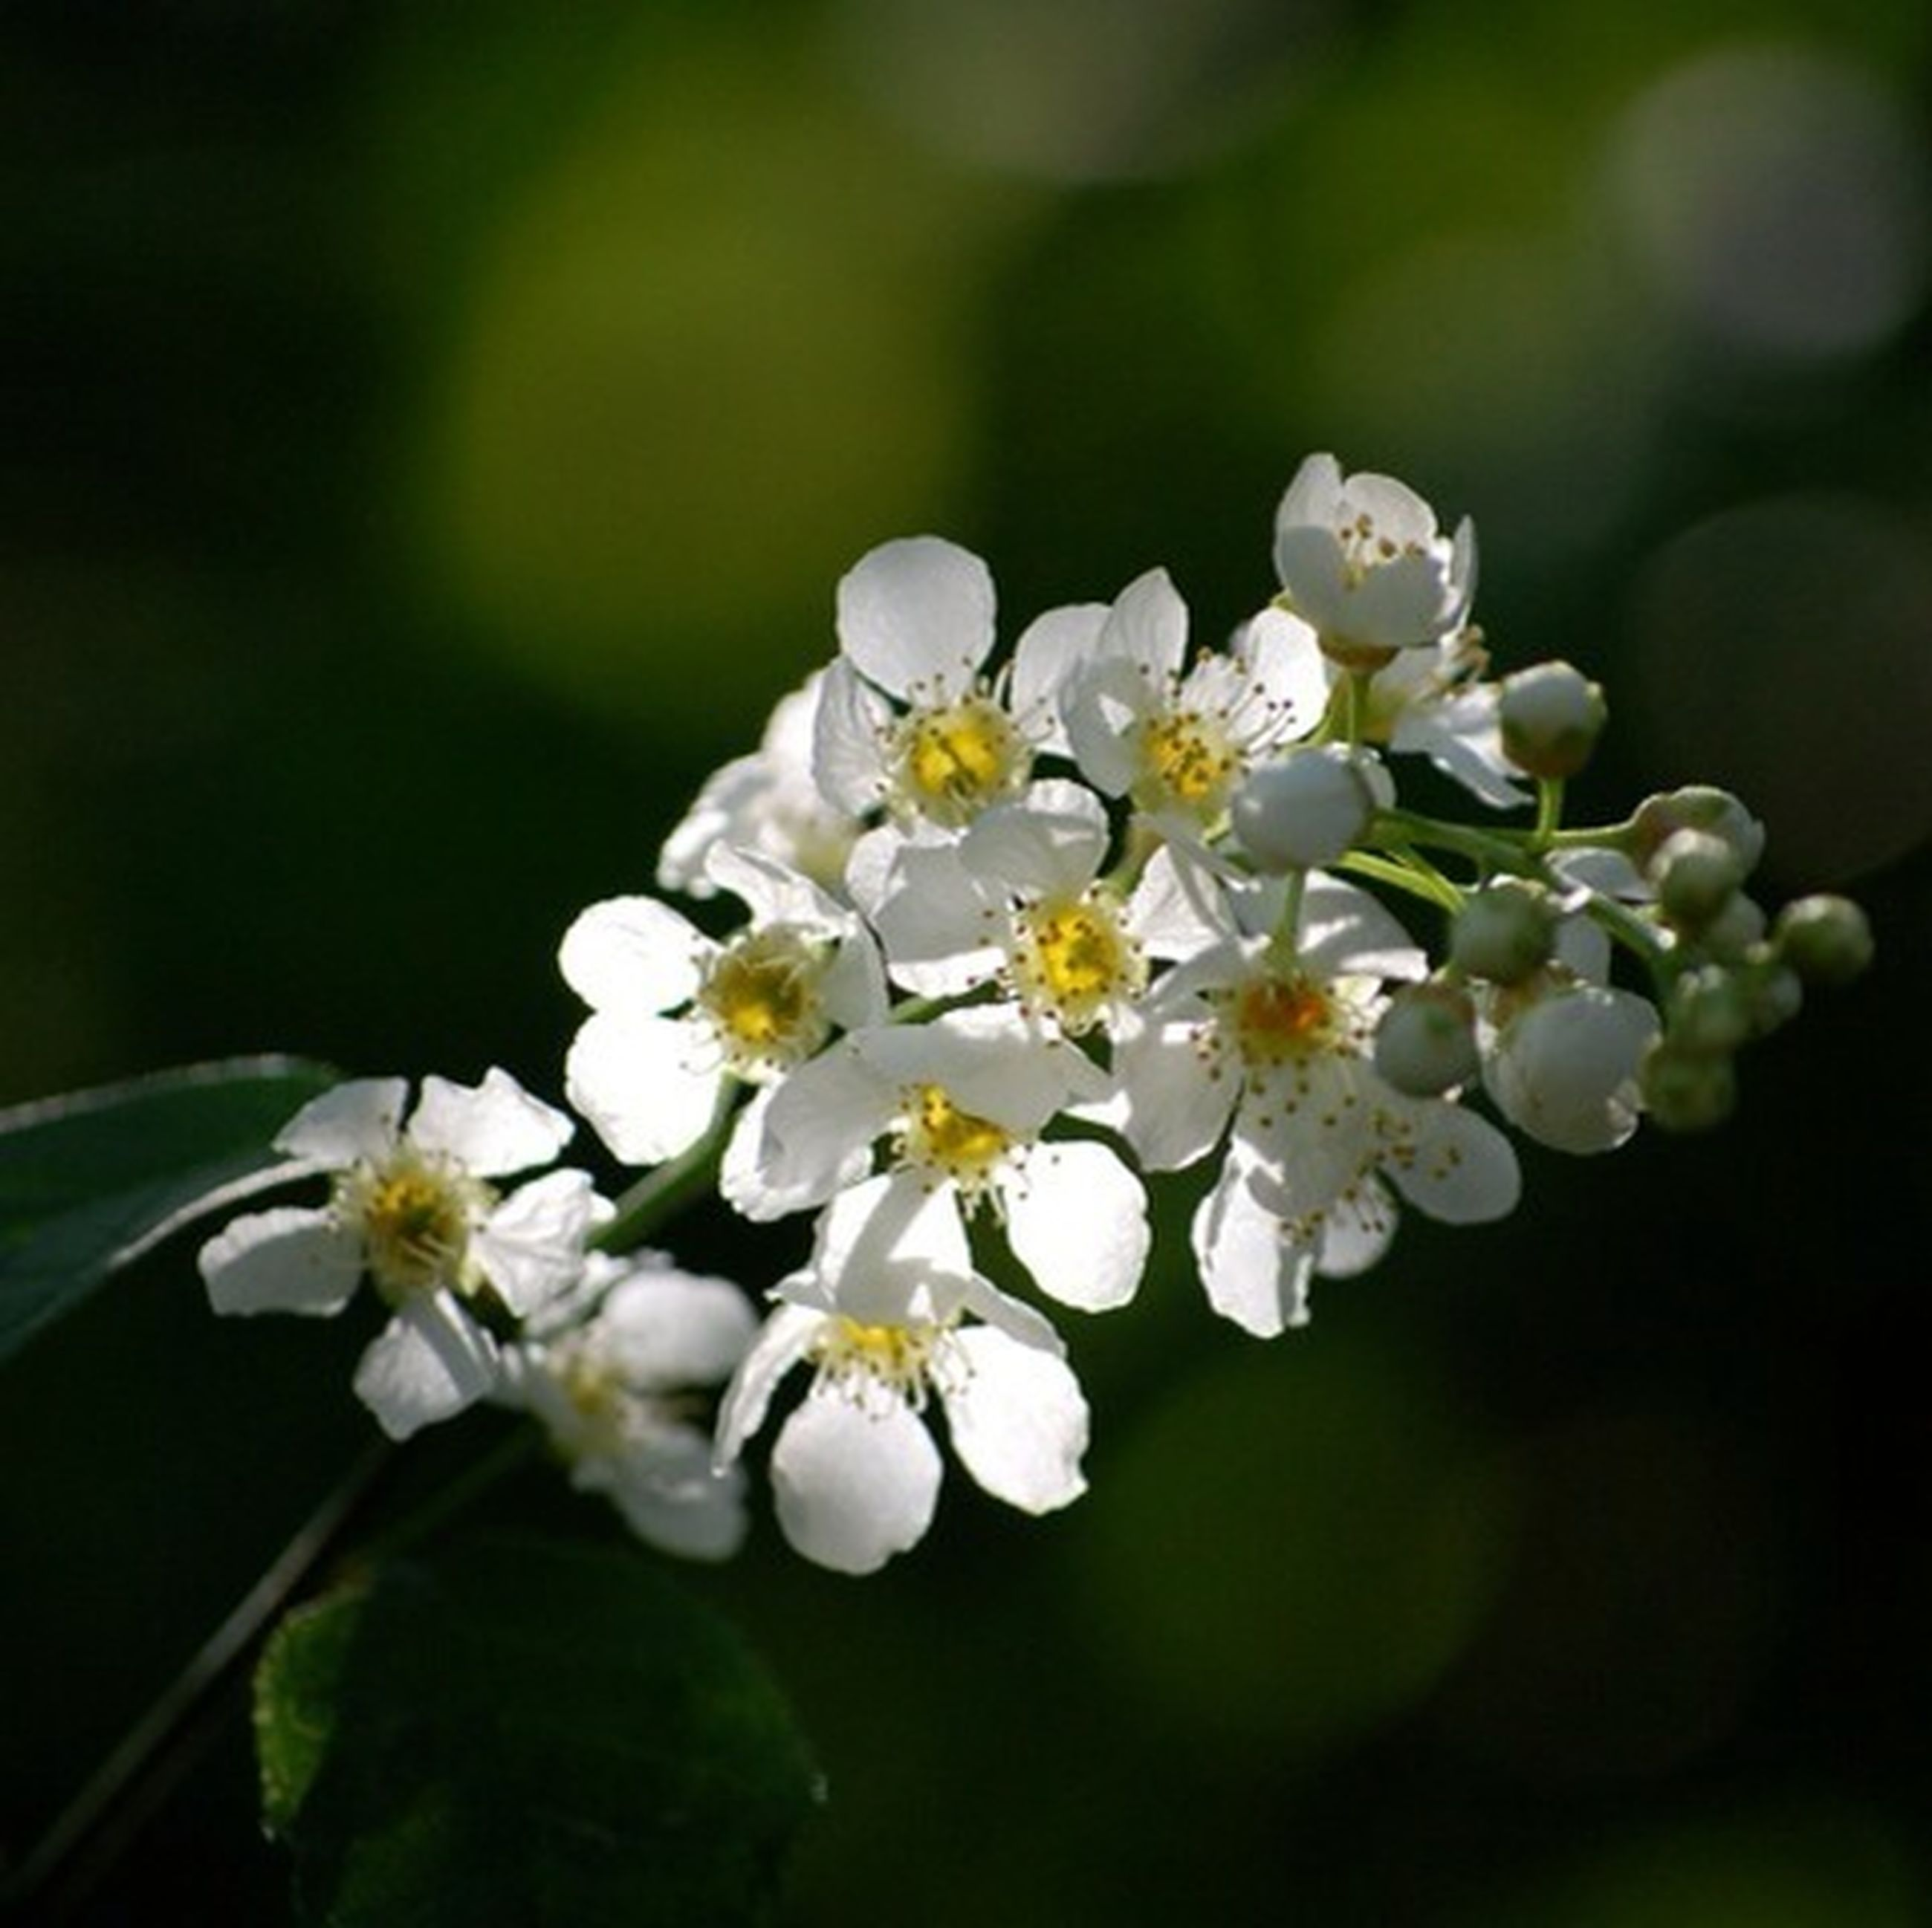 flower, freshness, white color, fragility, growth, petal, focus on foreground, beauty in nature, close-up, flower head, nature, blossom, blooming, cherry blossom, in bloom, selective focus, stamen, branch, white, apple blossom